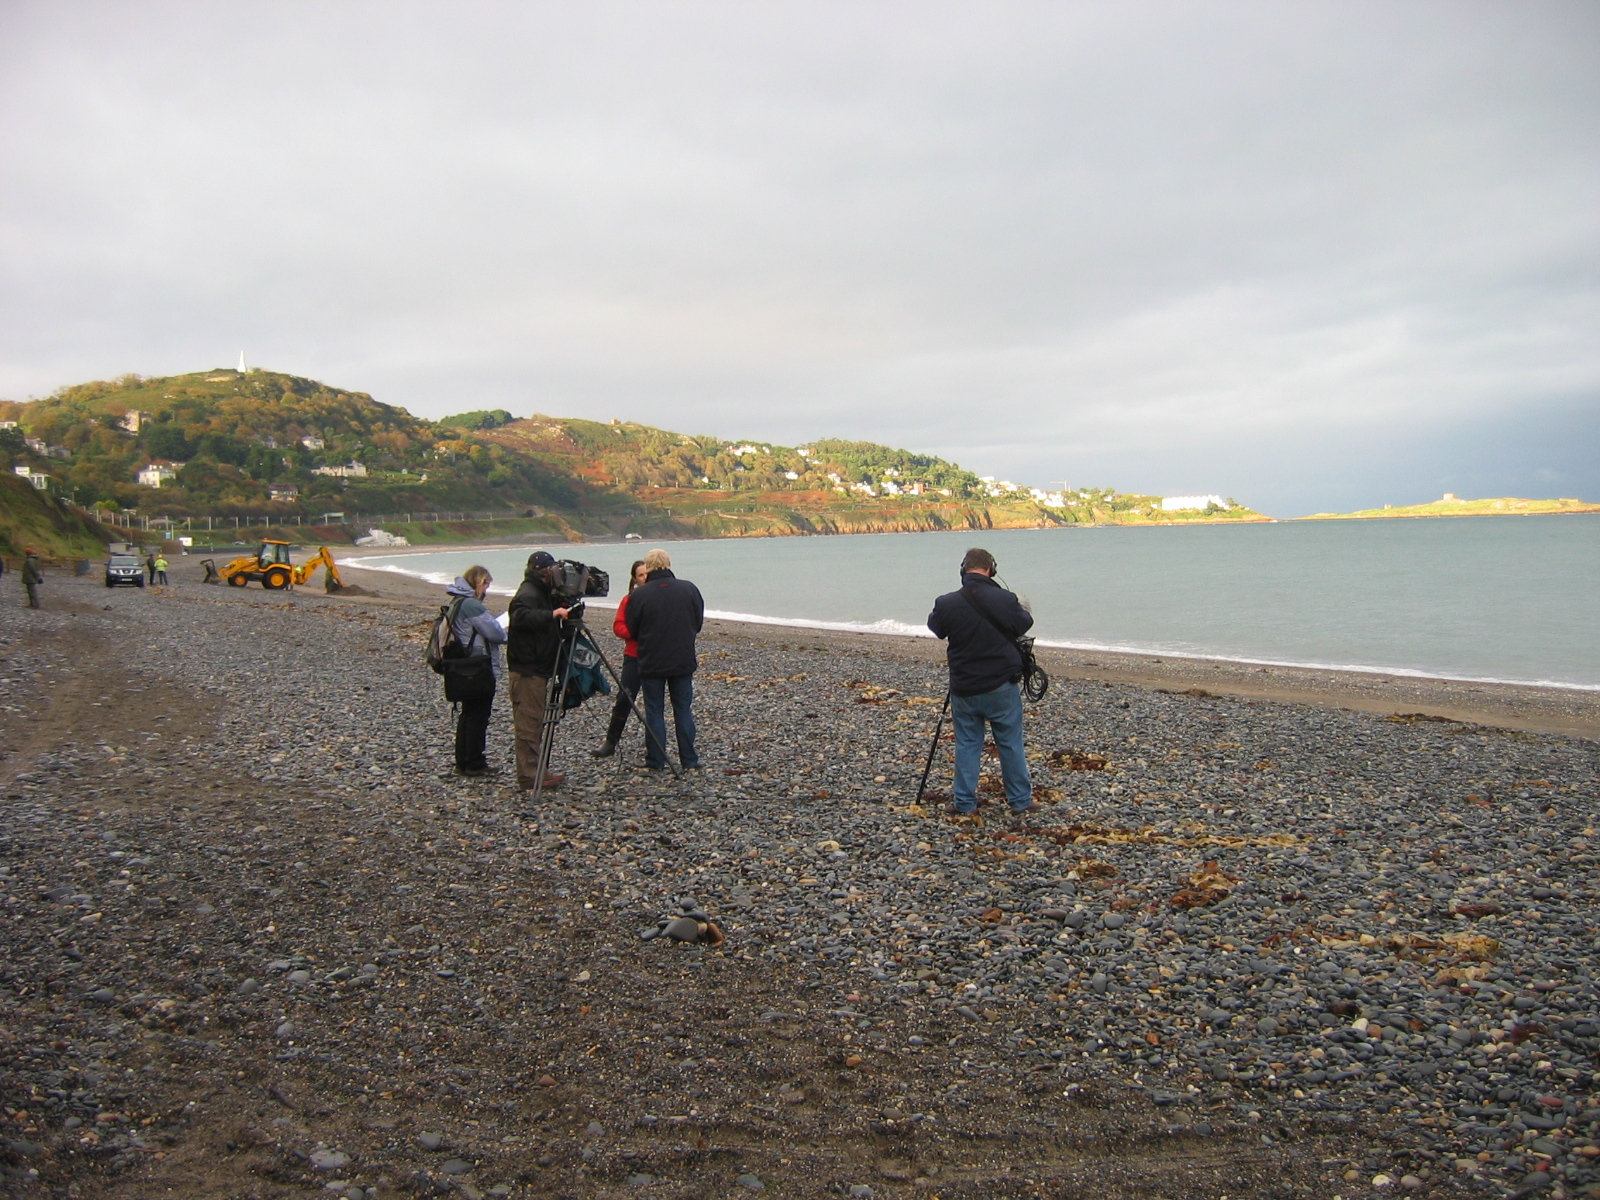 Filming by BBC on Killiney Beach